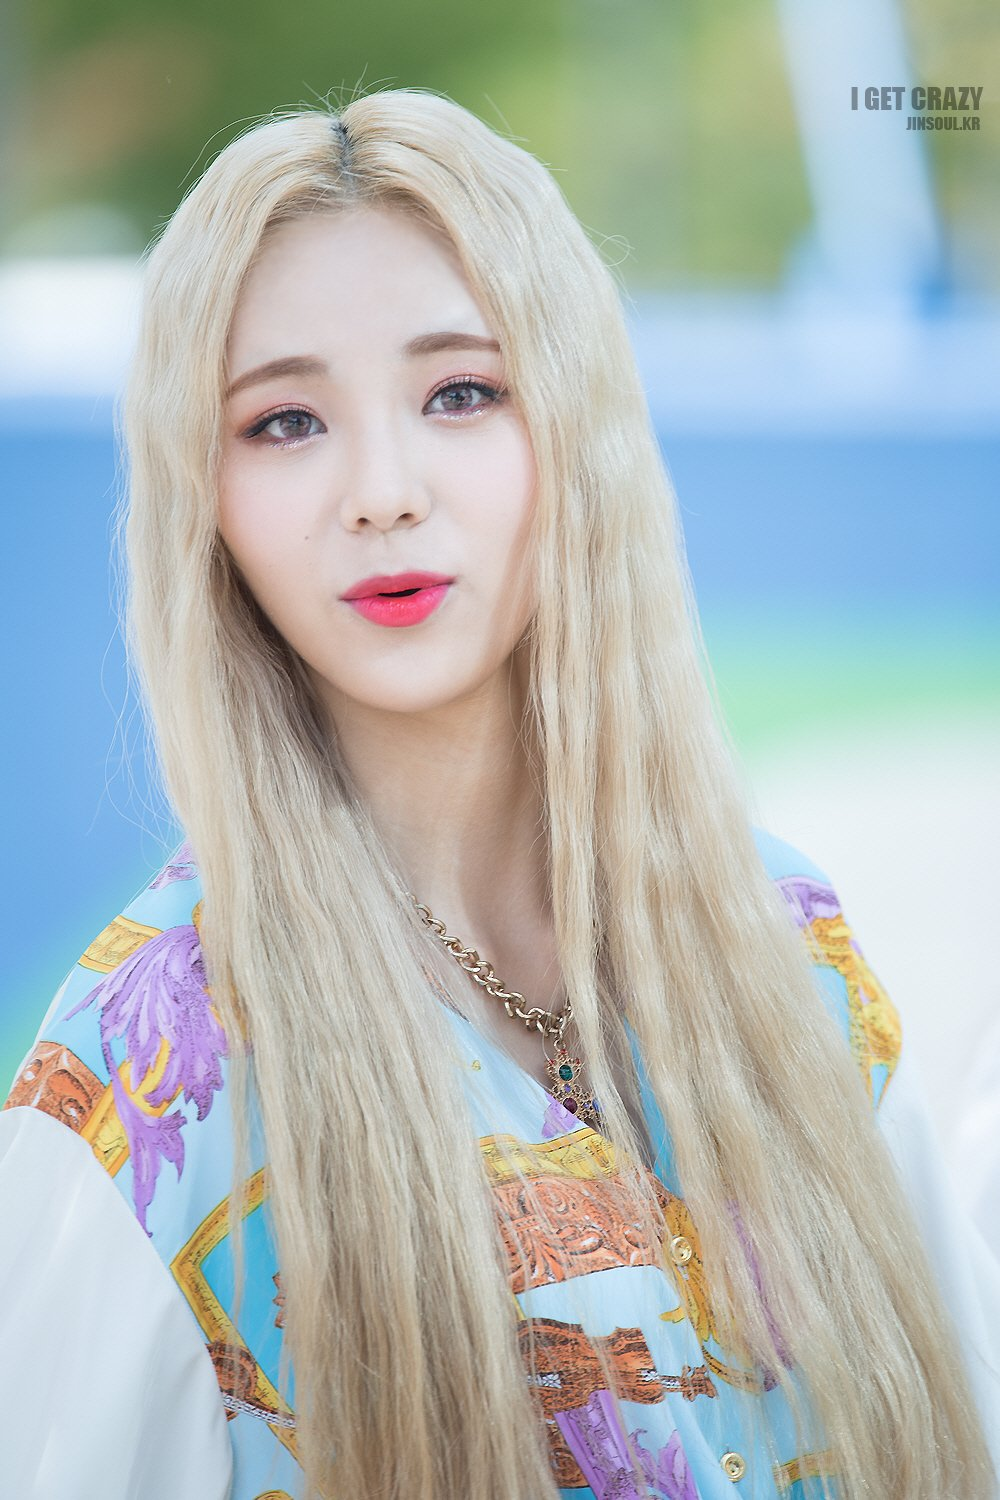 jung jinsoul  looΠΔ  page 3 of 75  asiachan kpop image